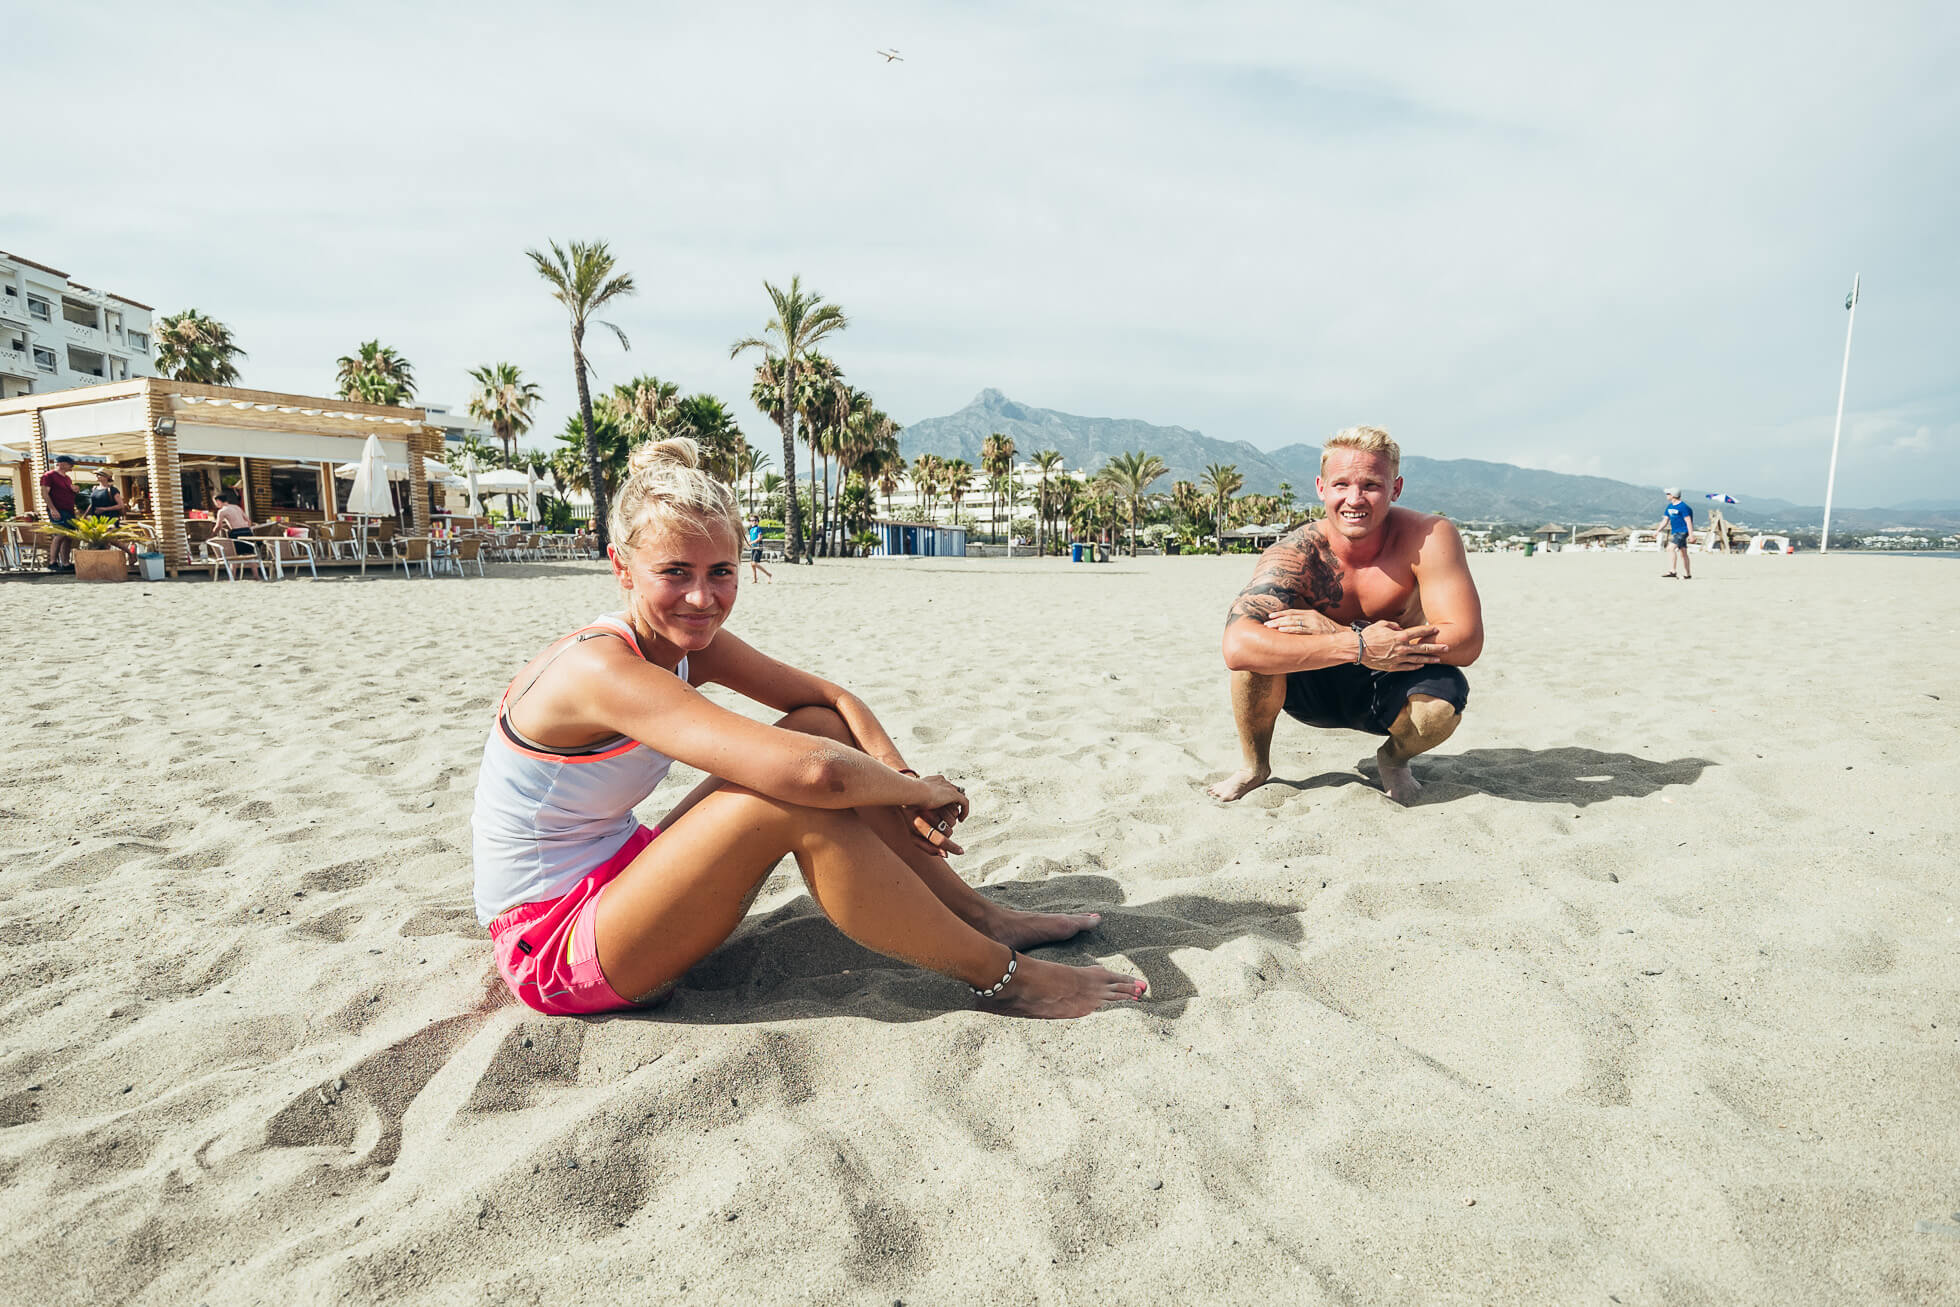 janni-deler-beach-workoutJ1120670